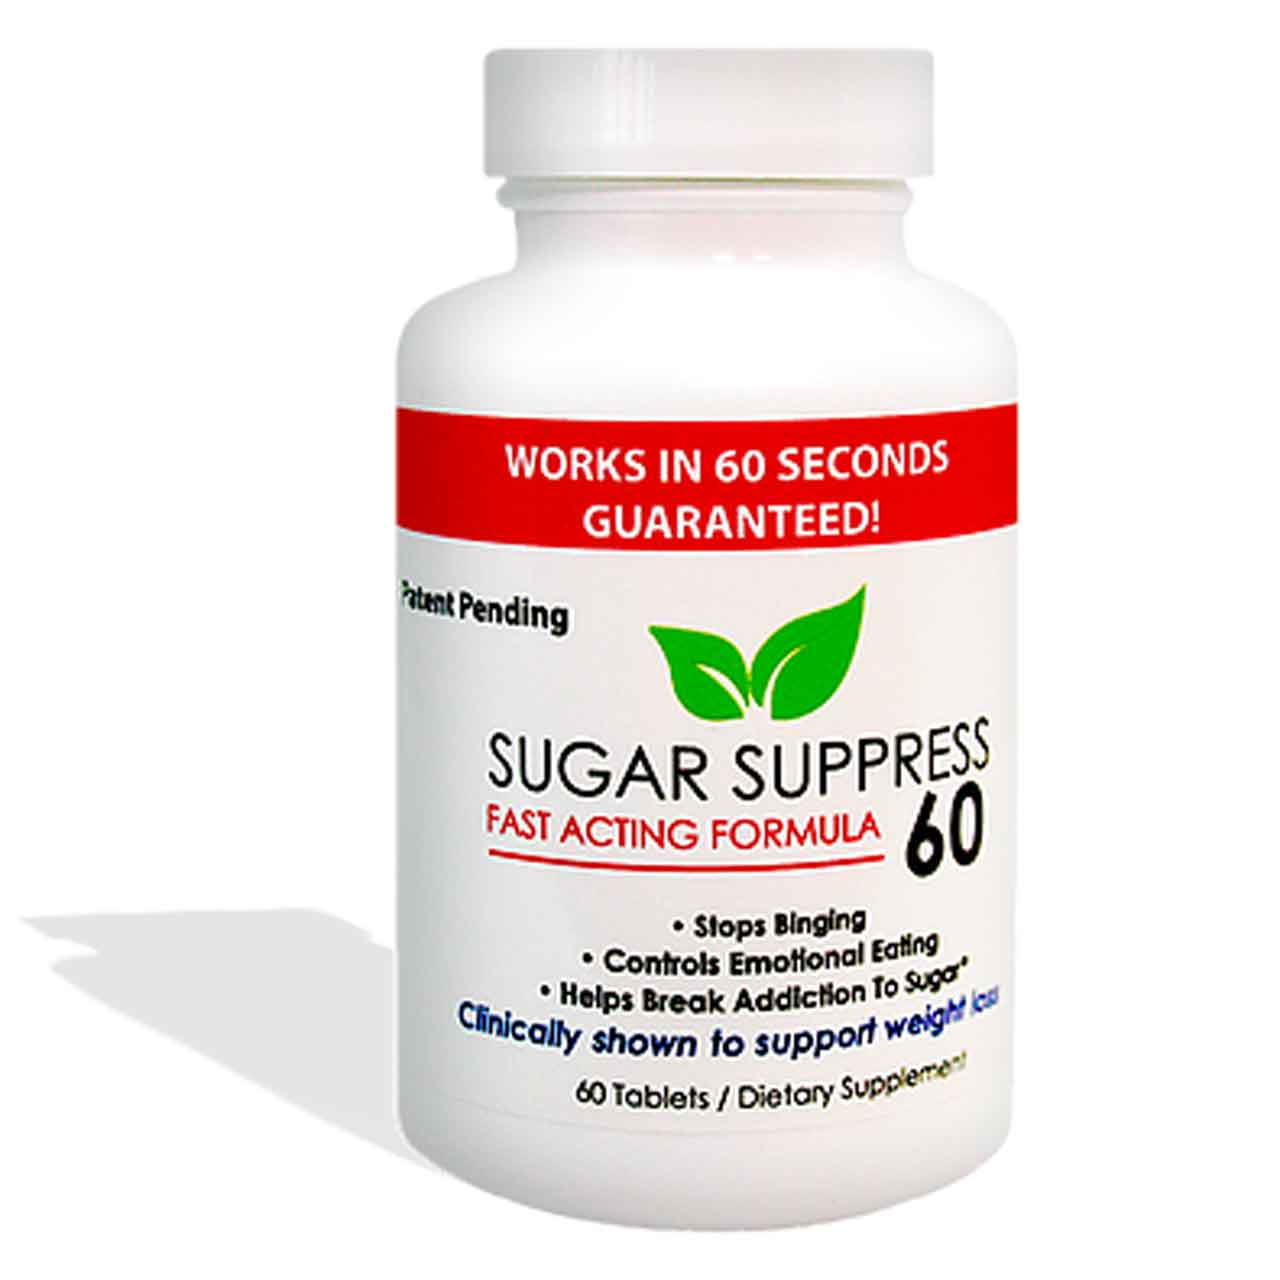 Sugar Suppress 60